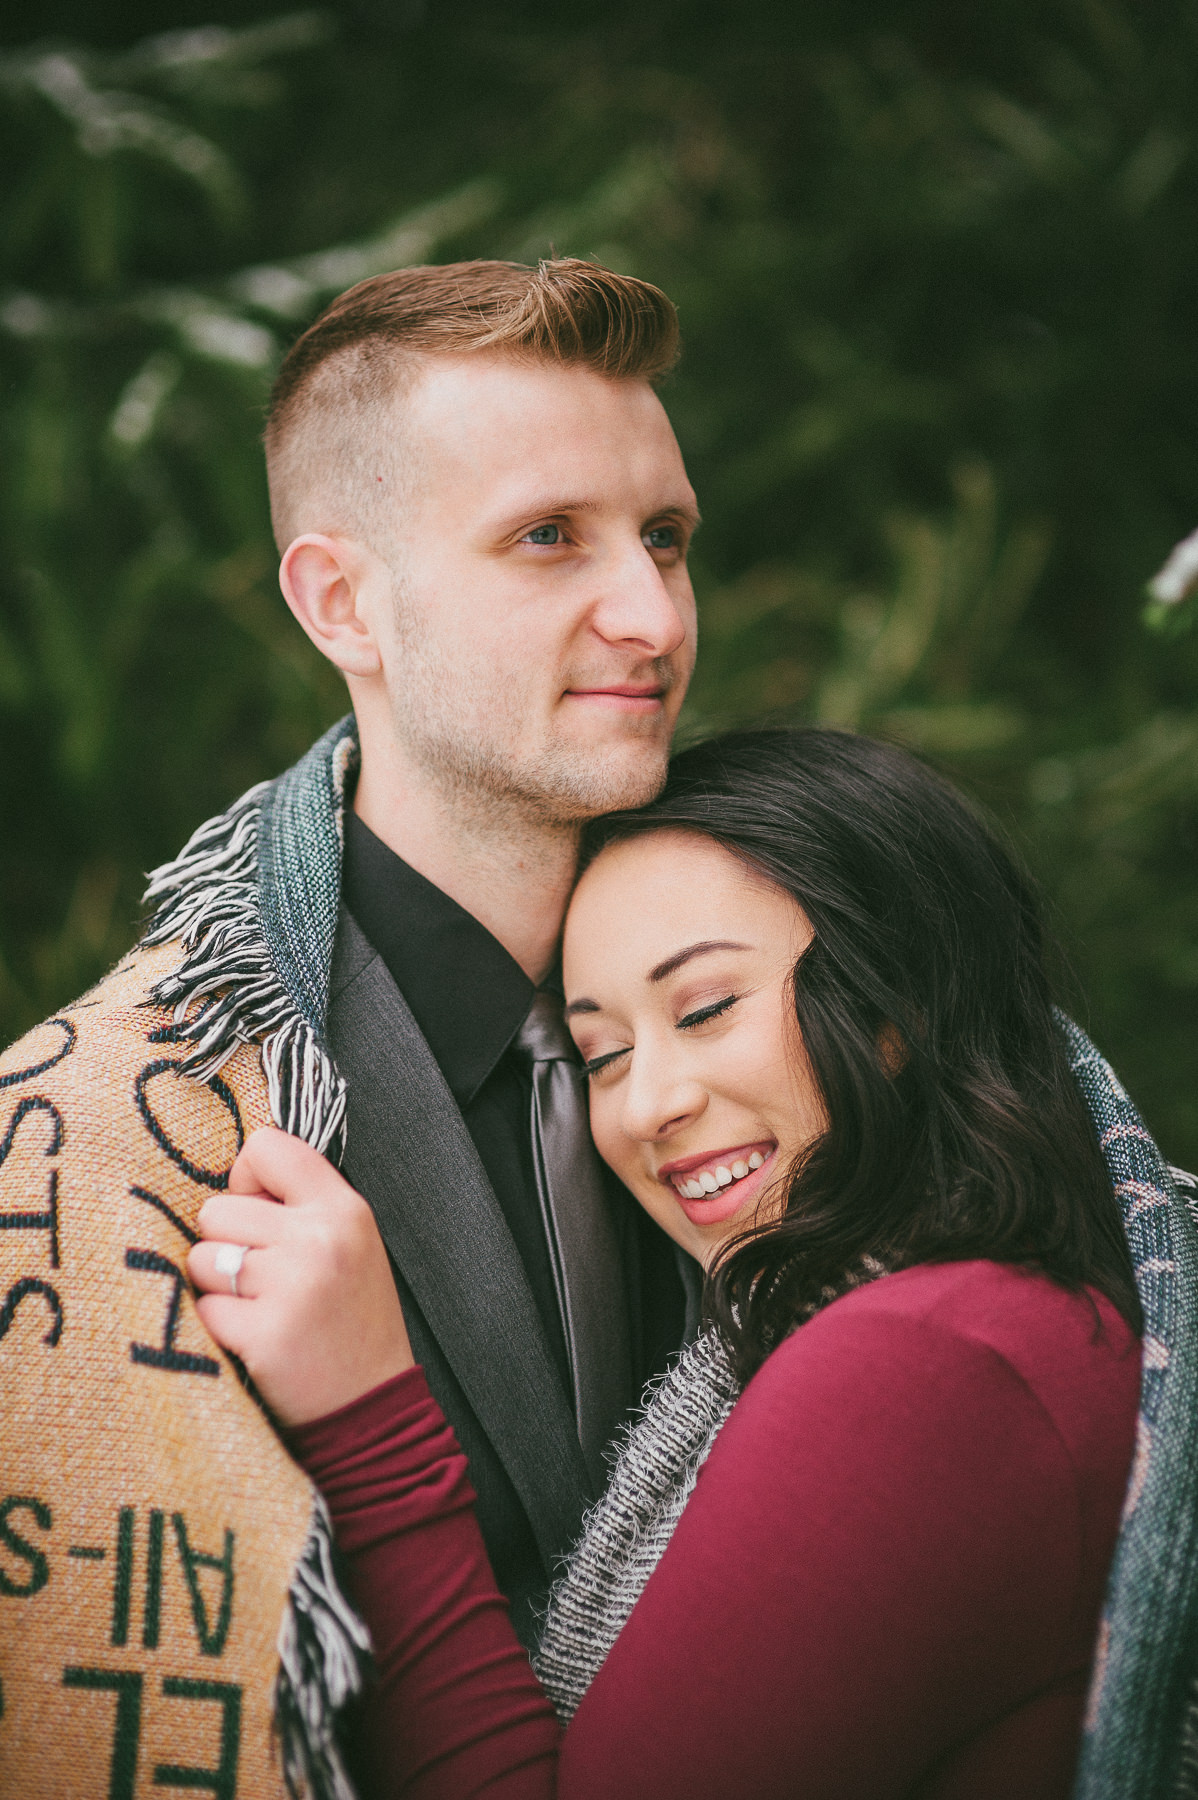 breighton-and-basette-photography-copyrighted-image-blog-abigail-and-ryne-engagement-029.jpg